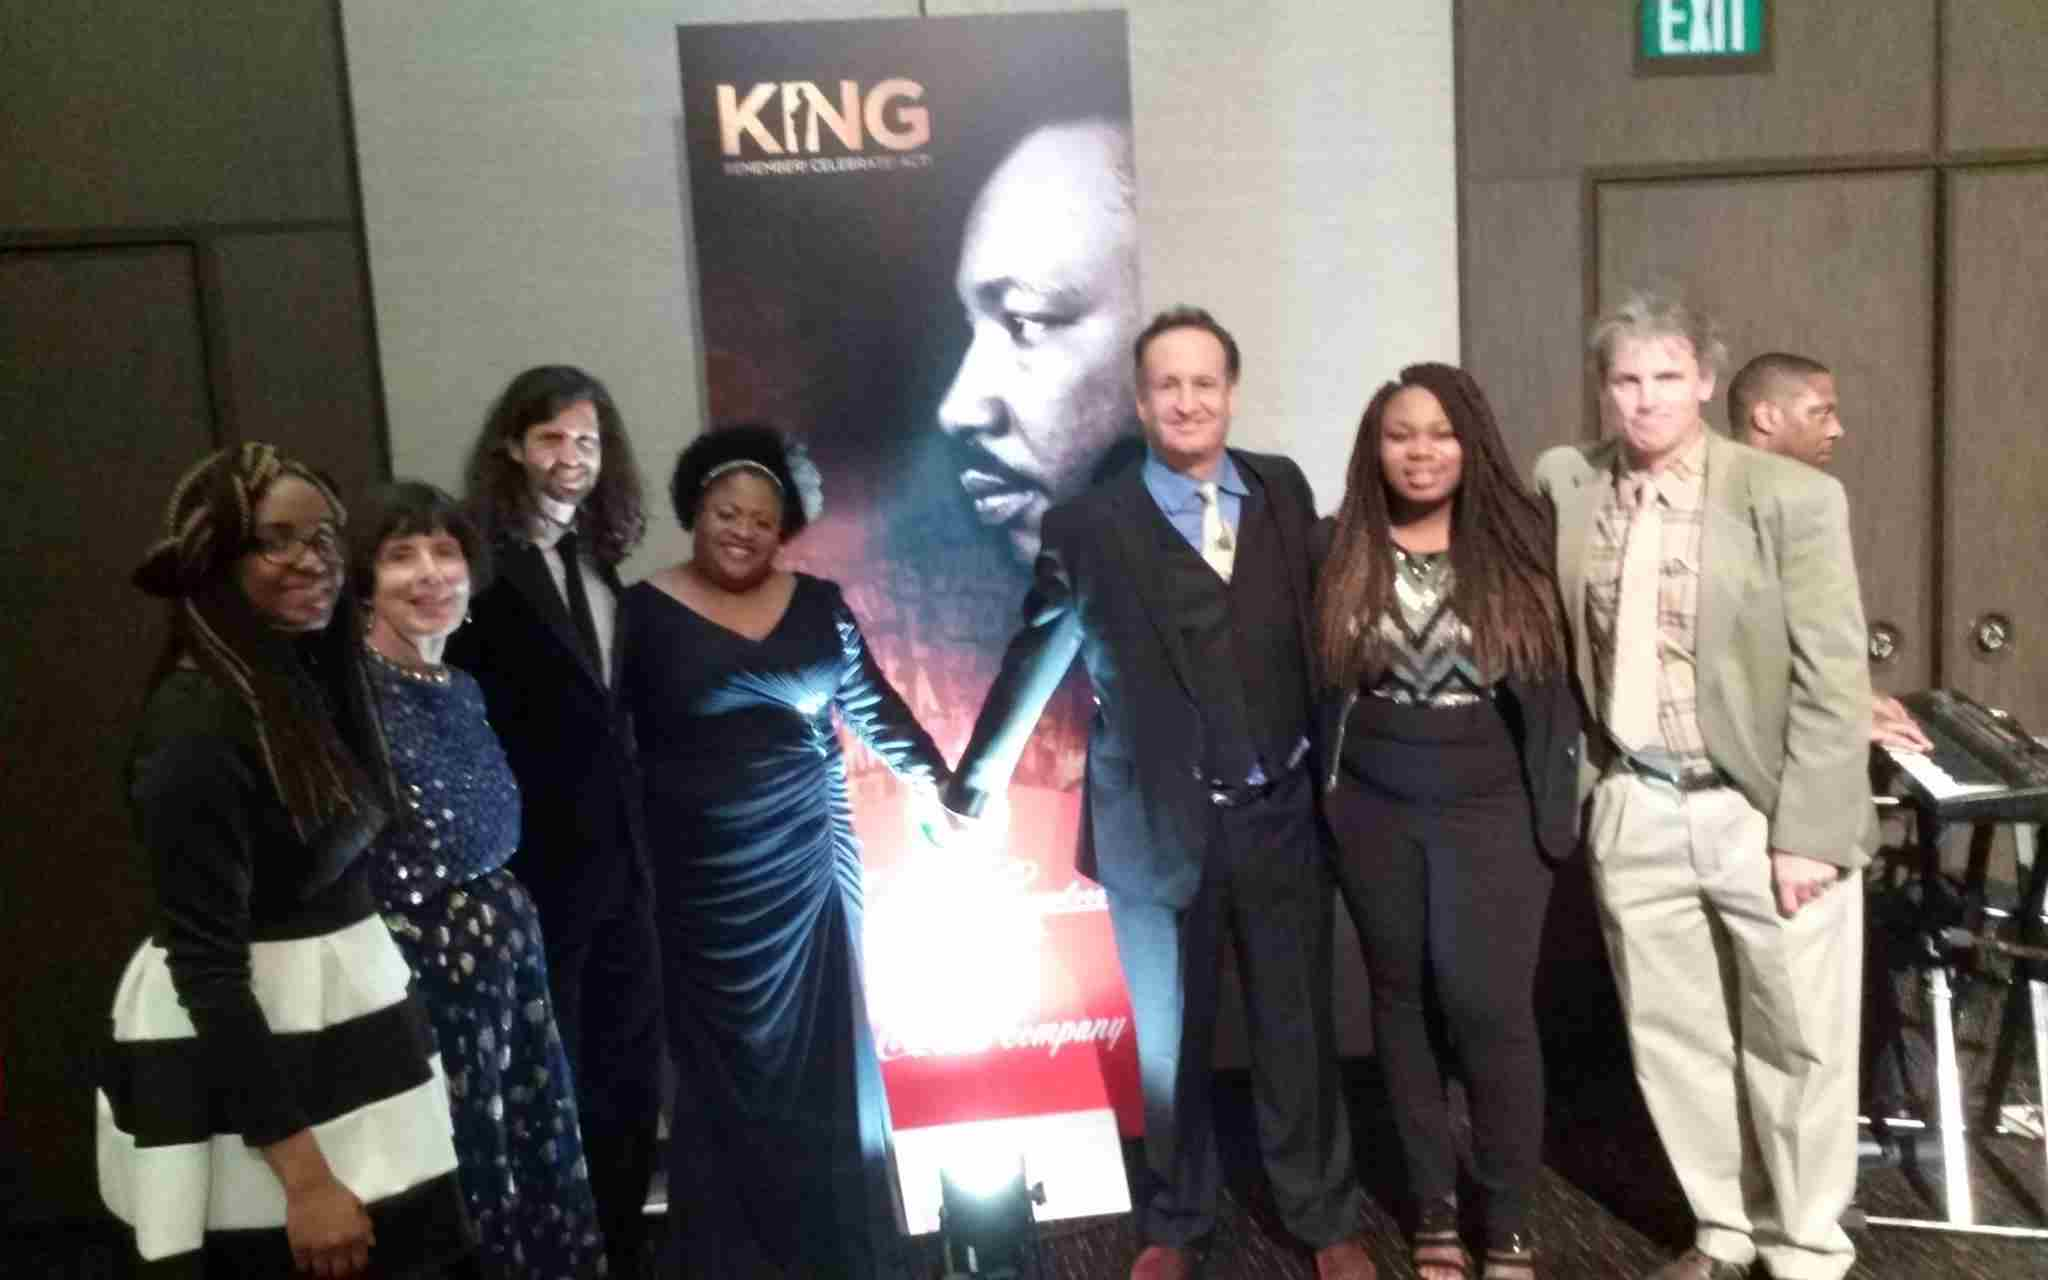 Sojourn to the Past attendees at the King dinner